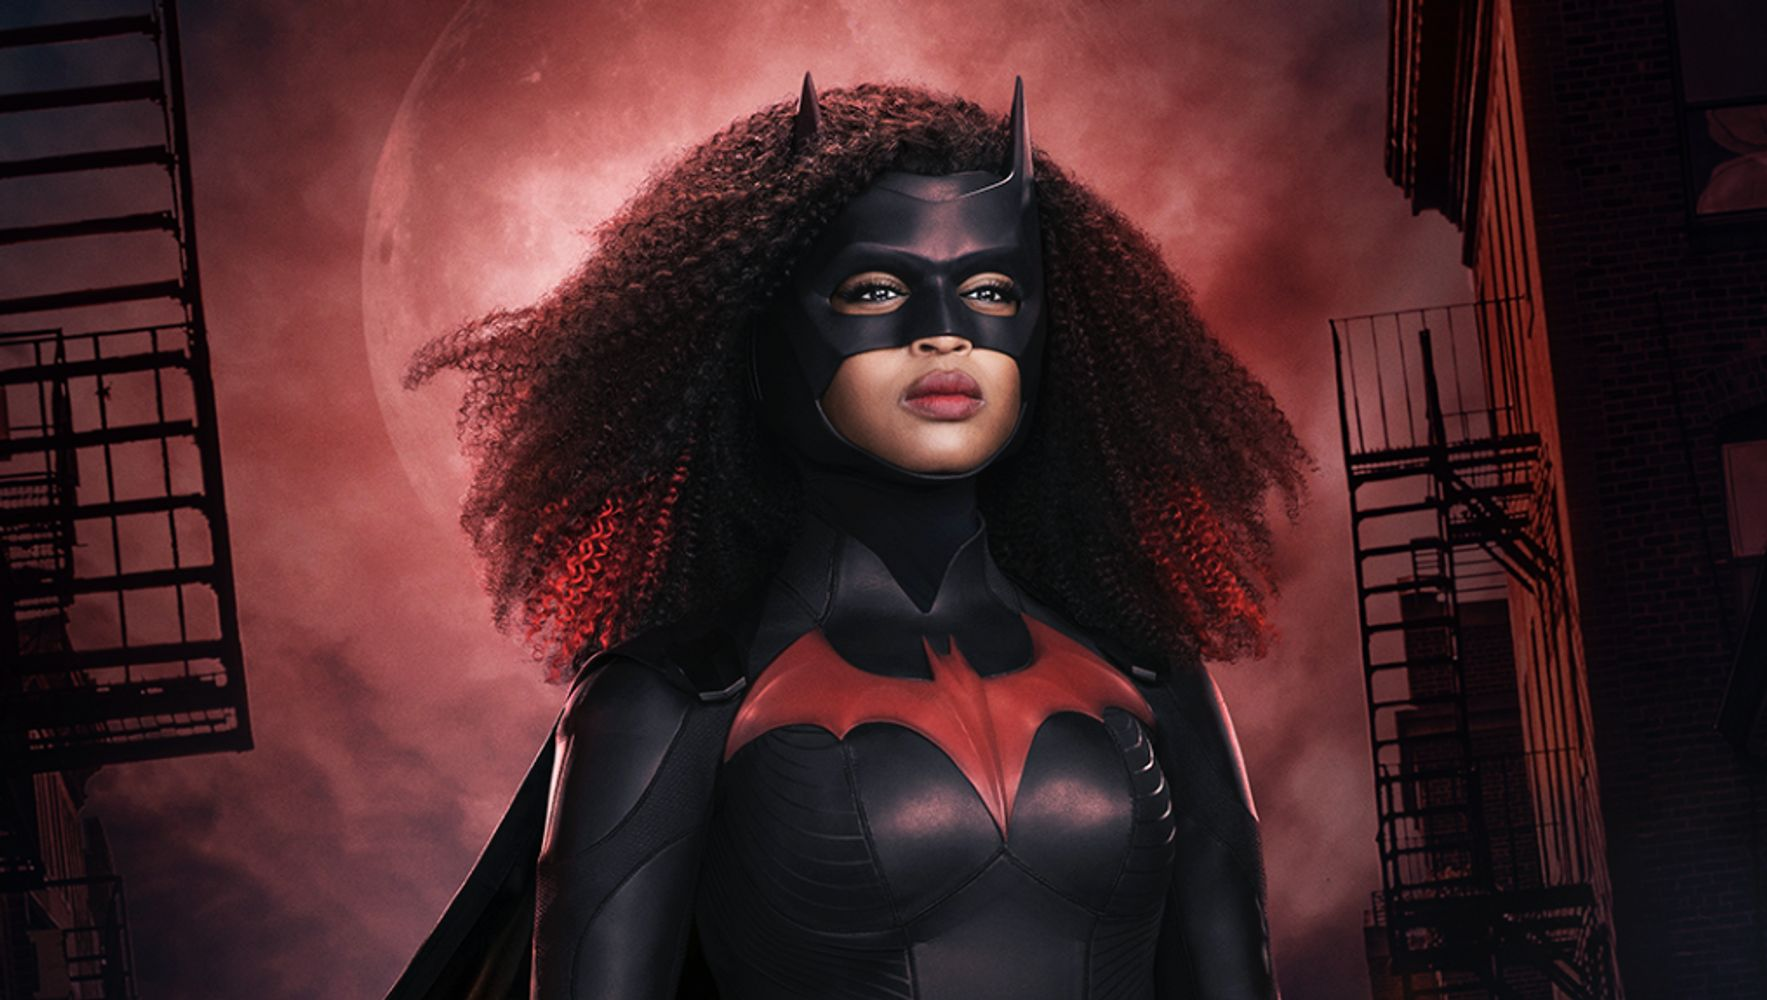 New Images Reveal Javicia Leslie As An Unapologetically Black Batwoman